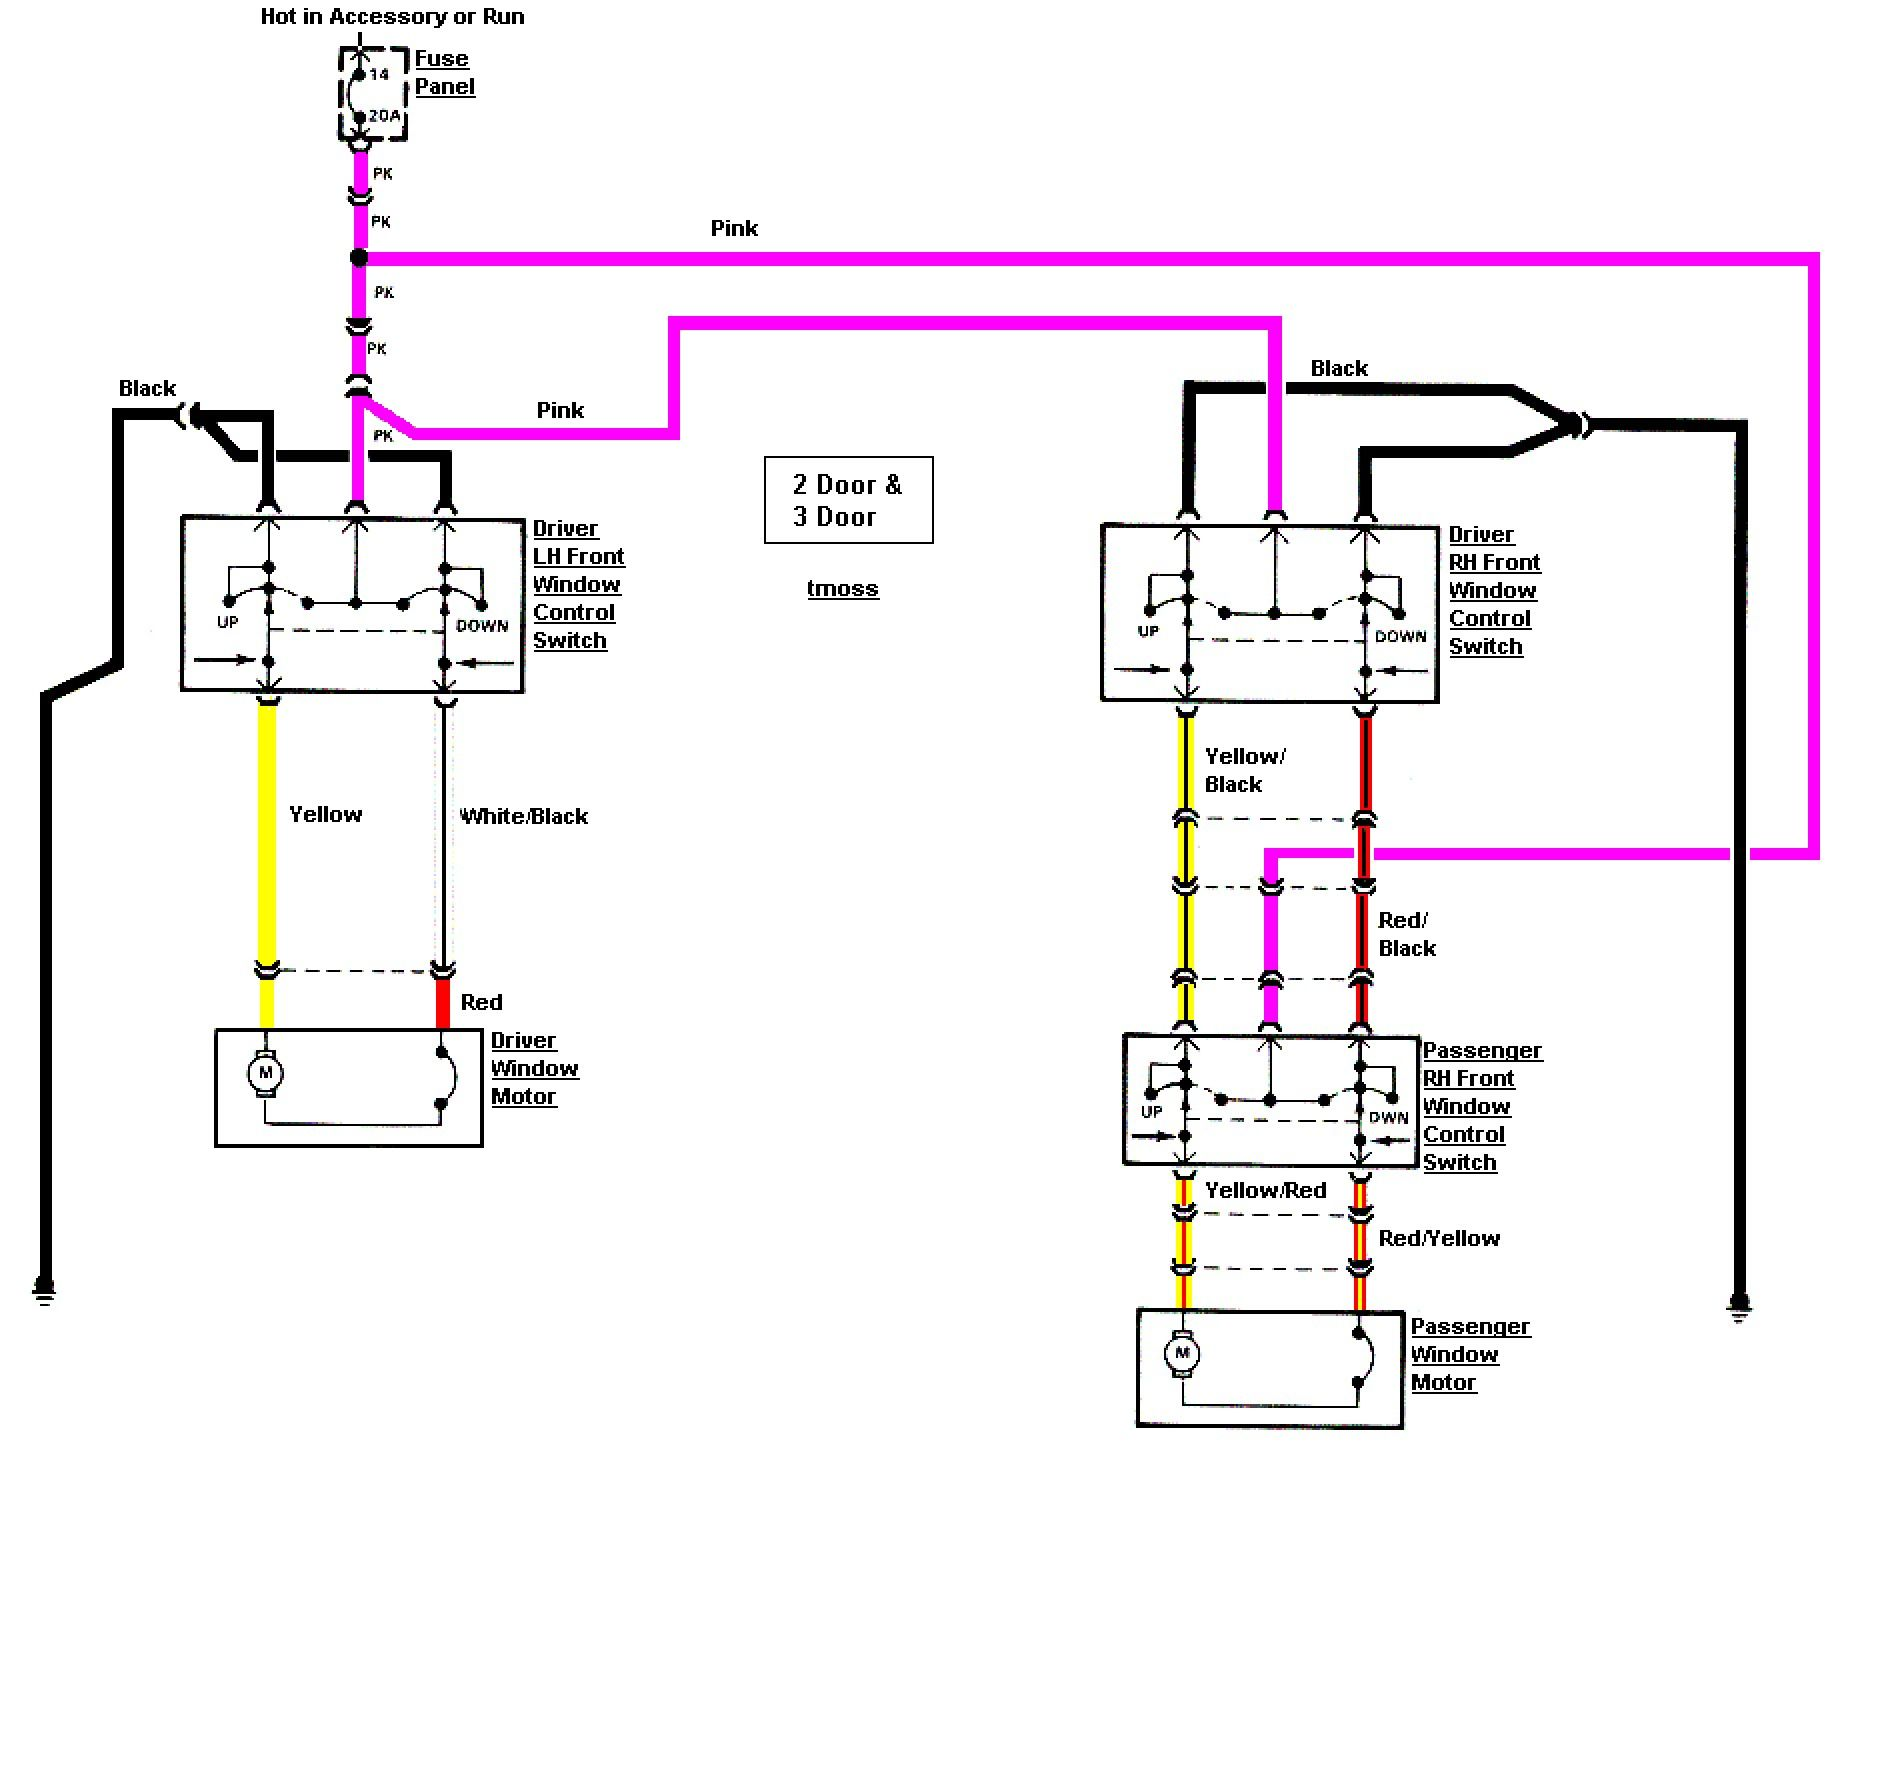 New Wiring Diagram Ac Mobil Diagram Black Yellow And White Black And Red